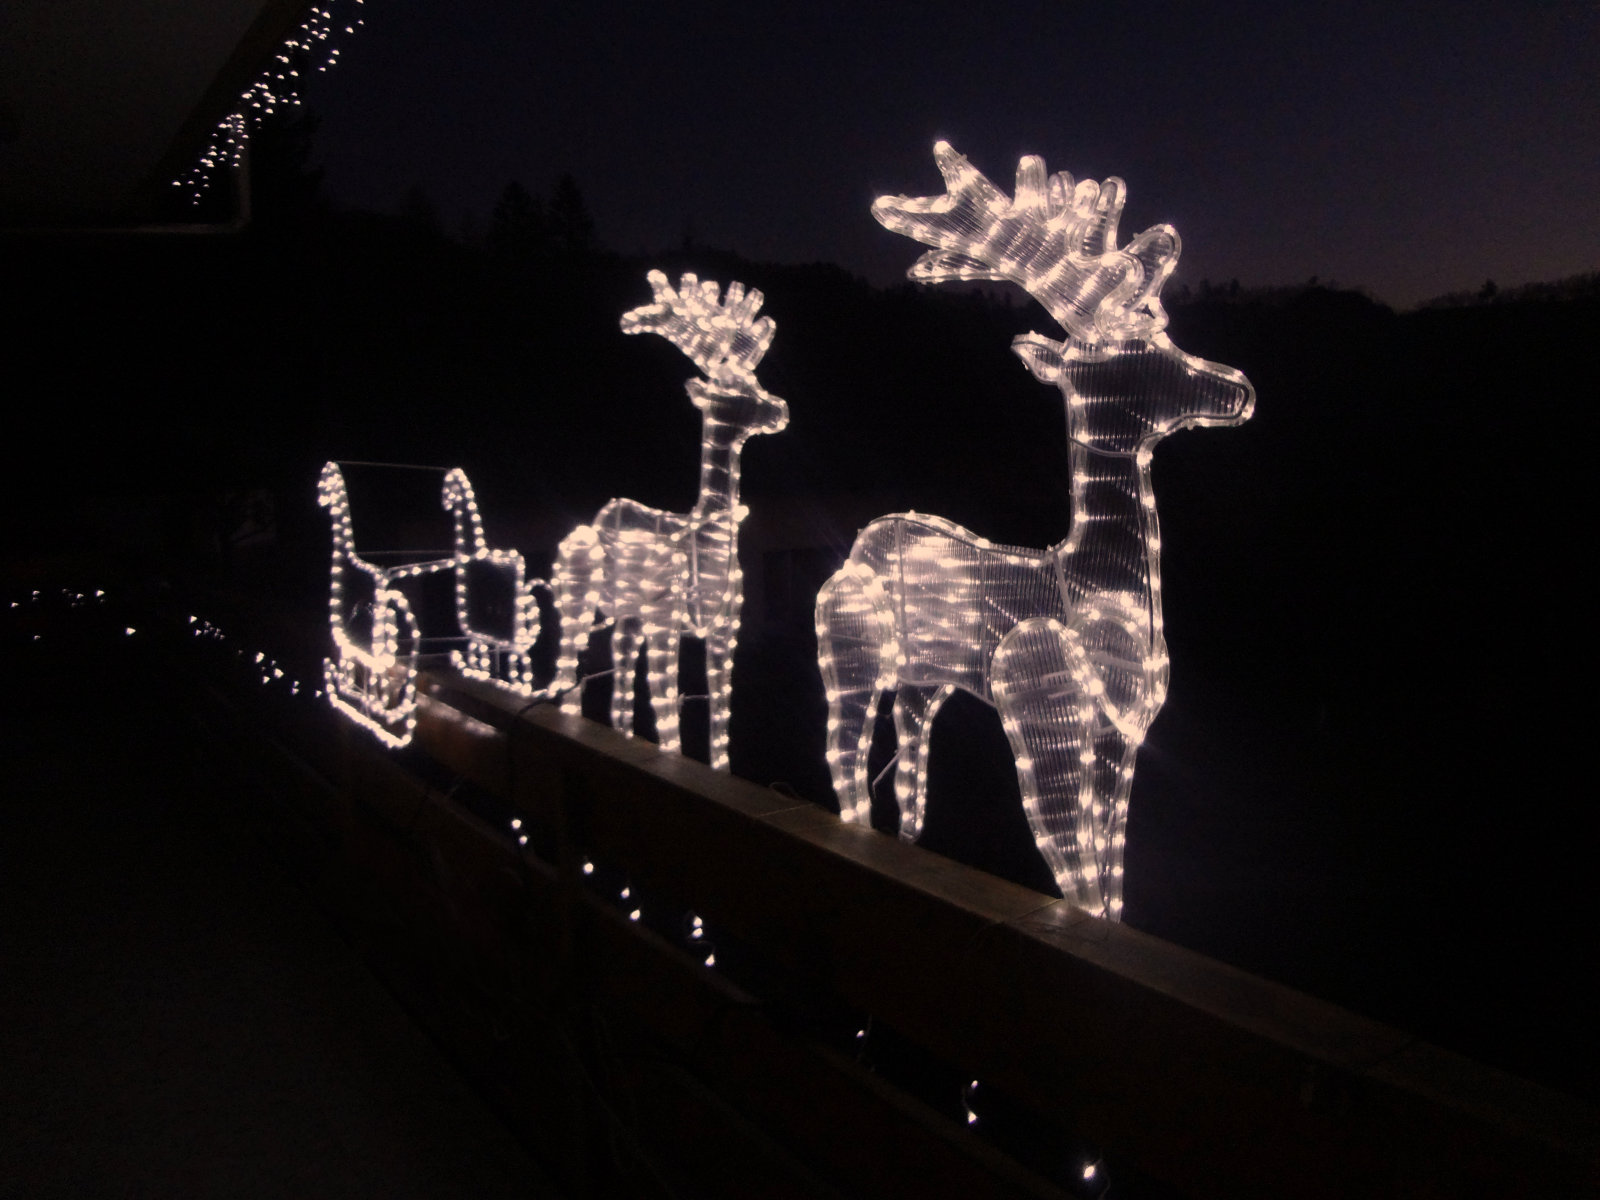 Exterior of the Fine Stay Apartment during the festive season with Christmas lights and reindeers